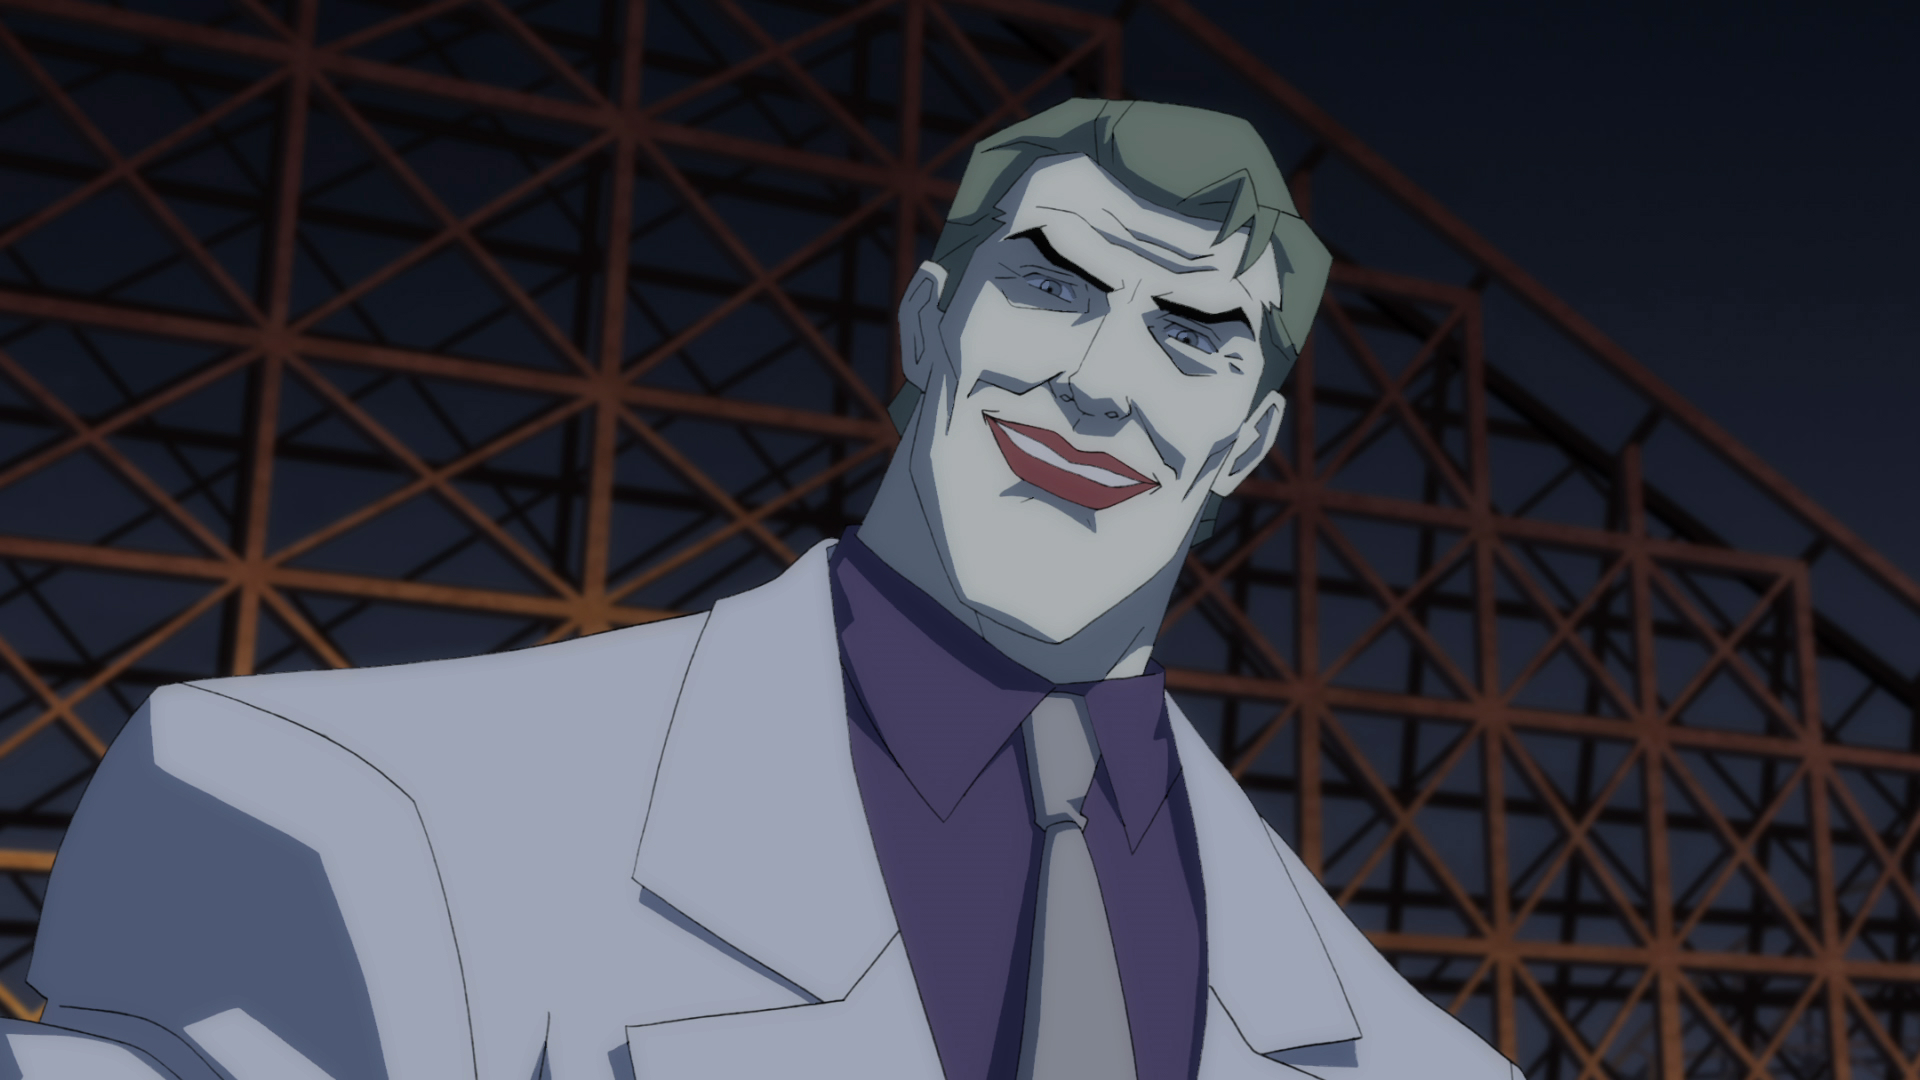 The Joker (The Dark Knight Returns)